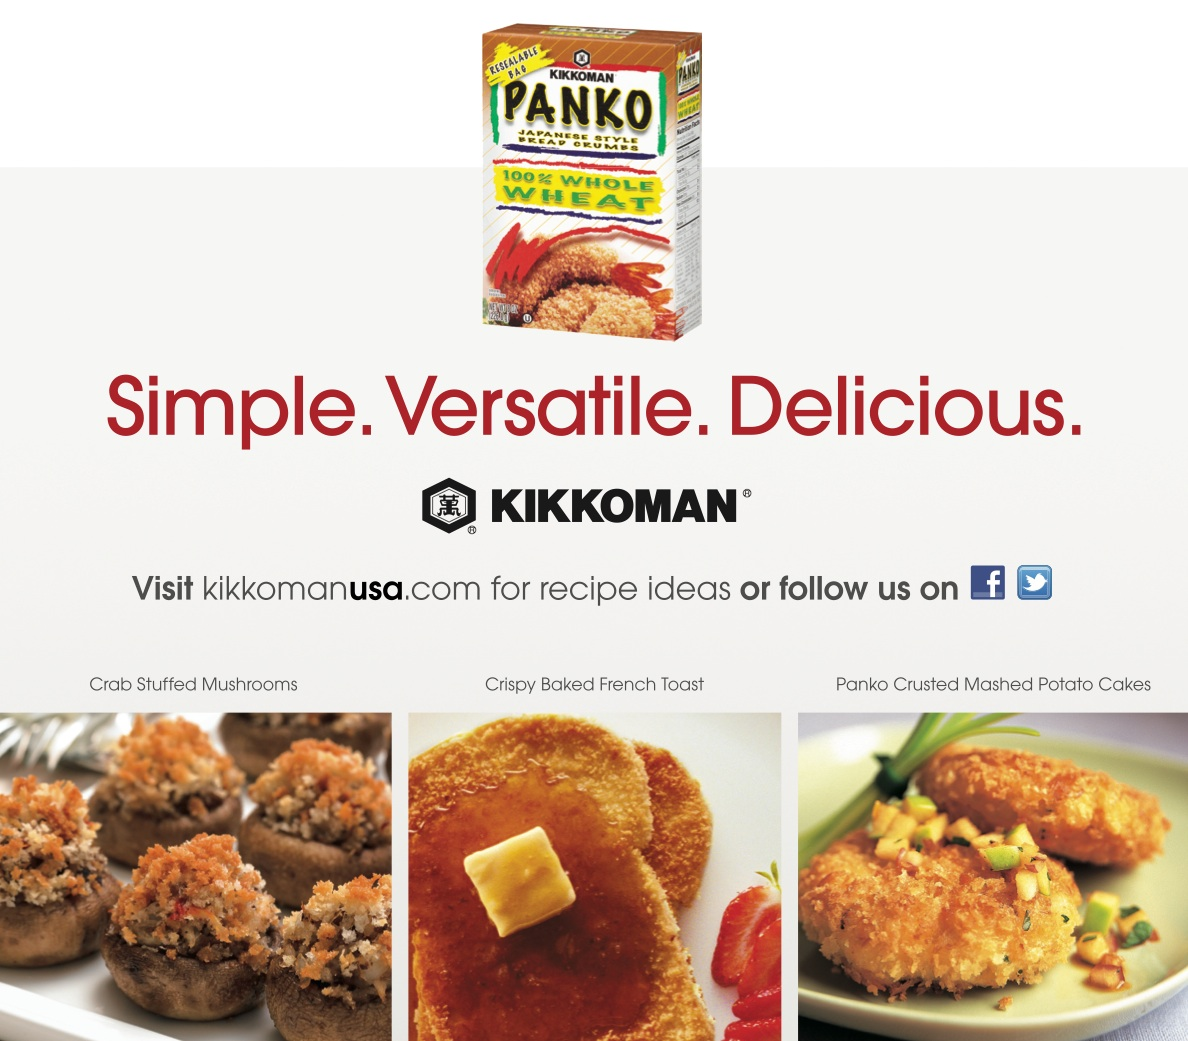 Kikkoman-Panko-Header-Card1